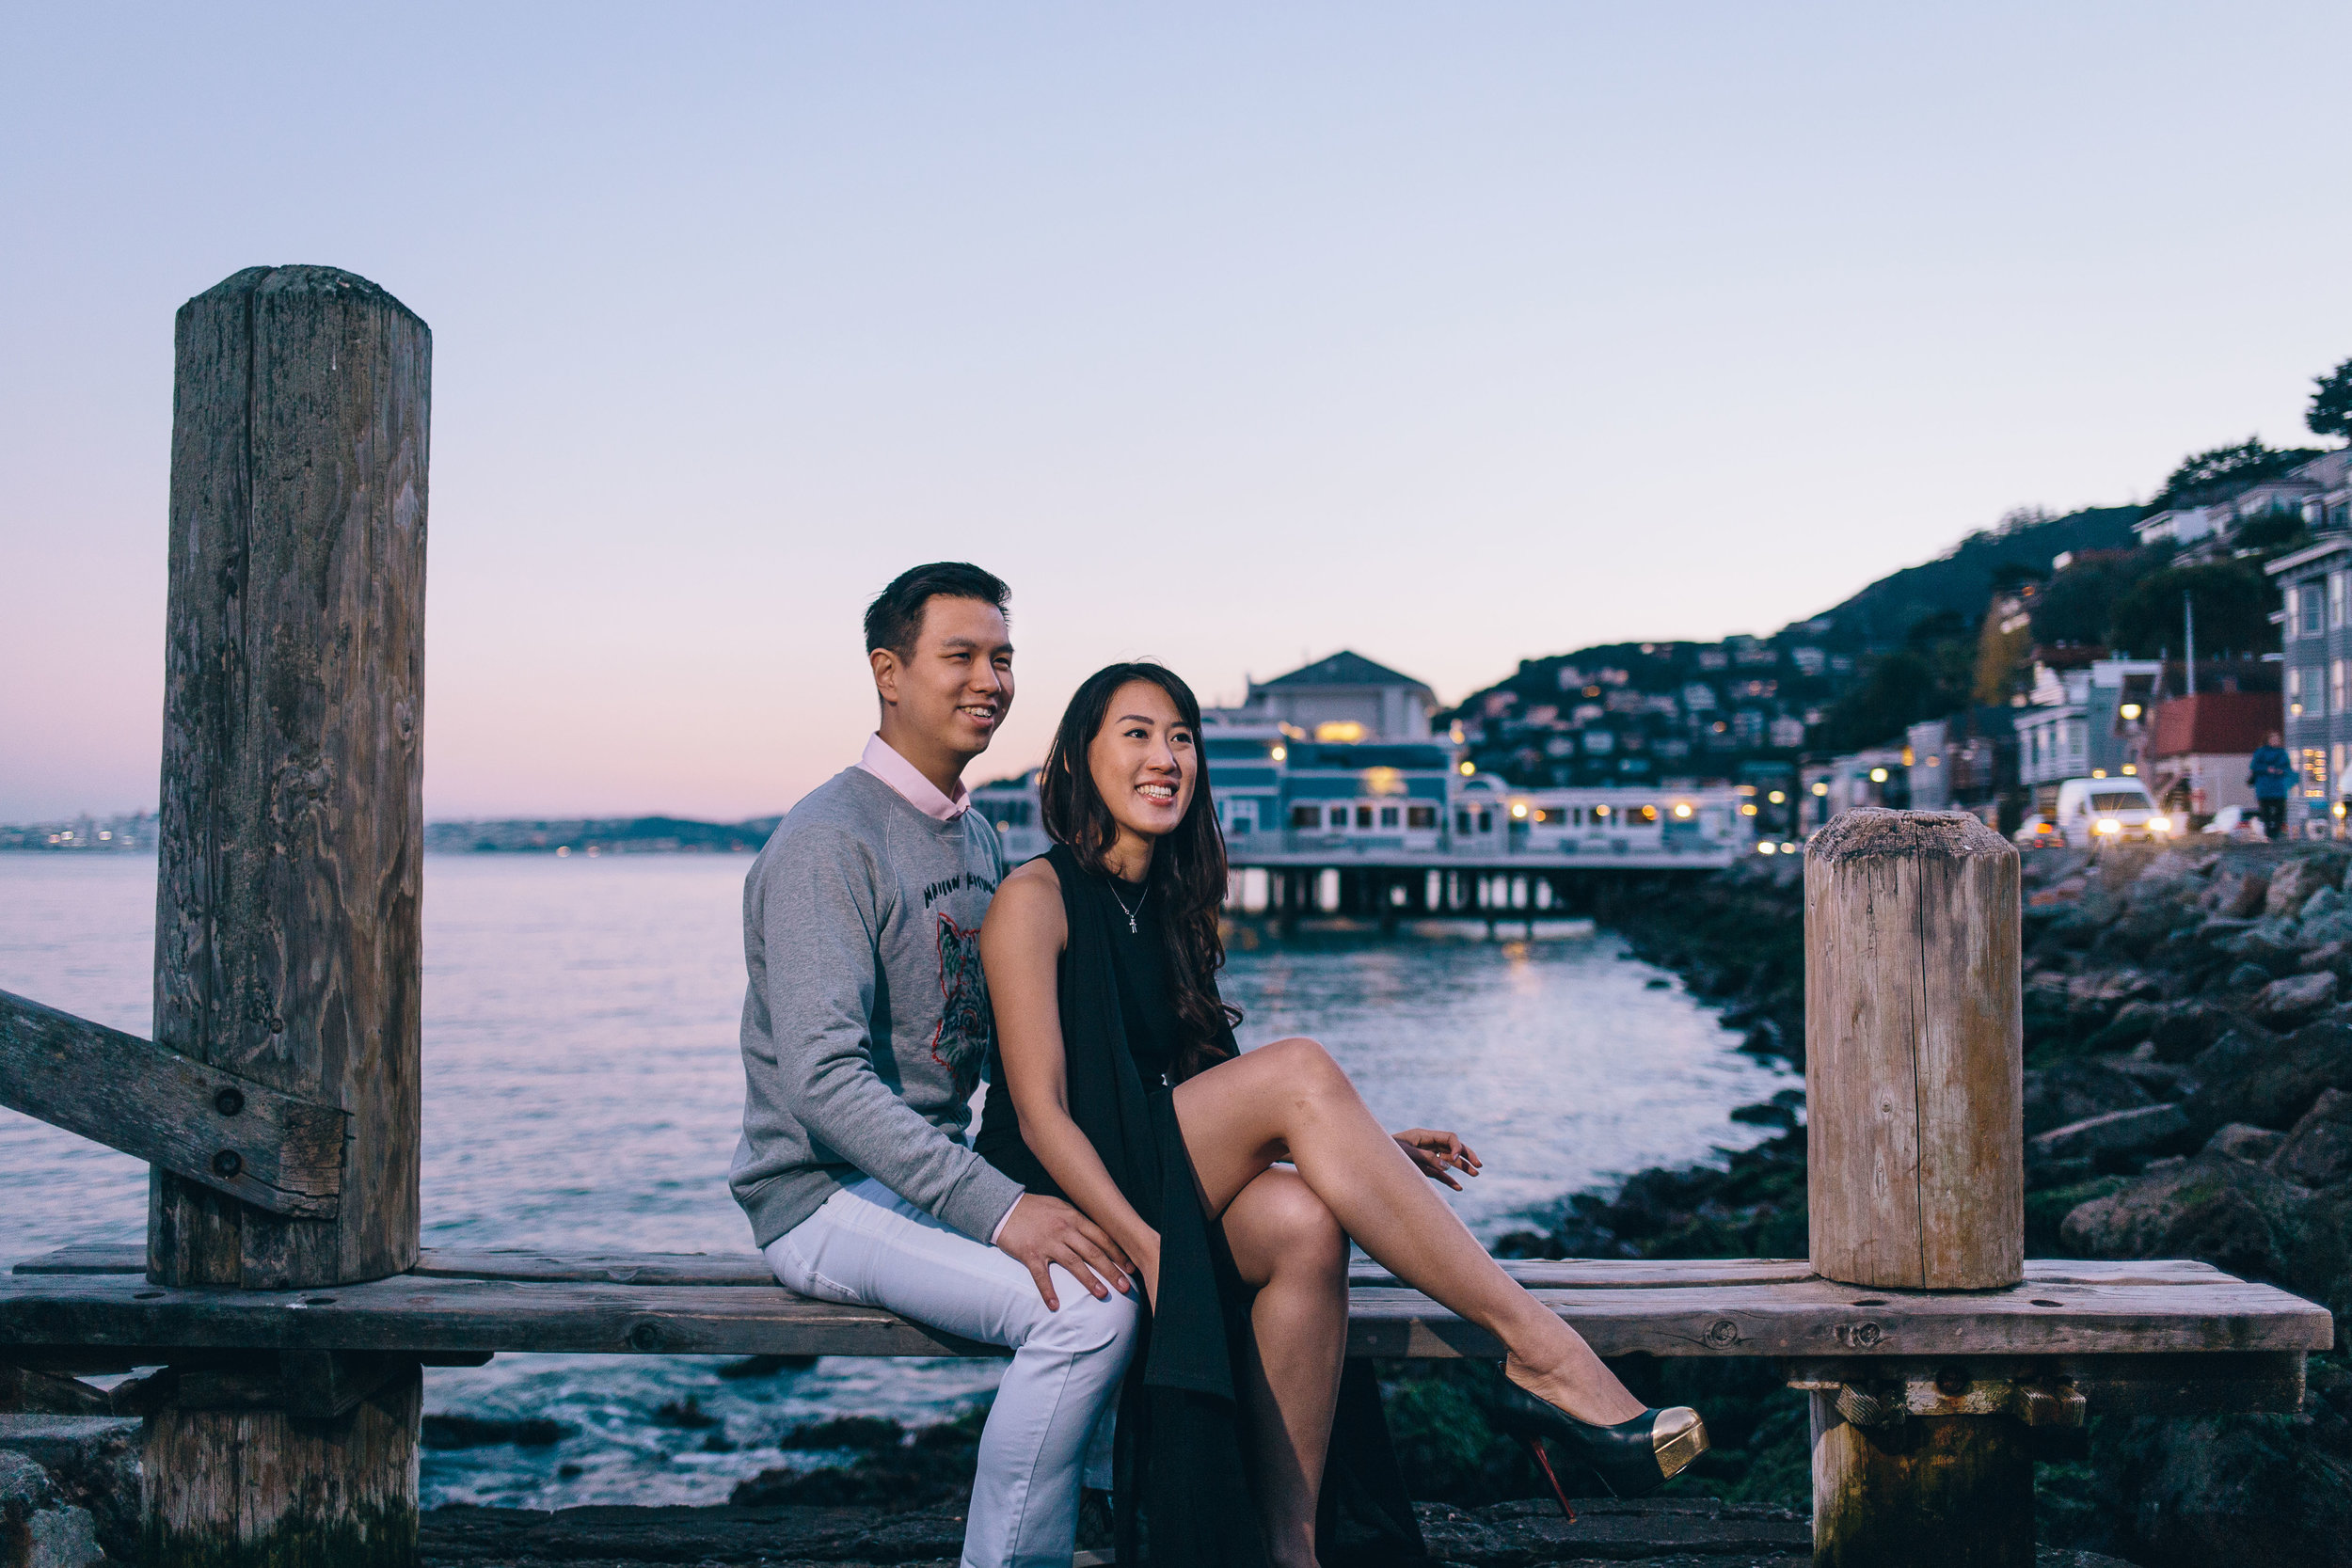 Pre-Wedding Photos in San Francisco by JBJ Pictures Pre-Wedding Photographer, Engagement Session and Wedding Photography in Napa, Sonoma, SF Bay Area (39).jpg